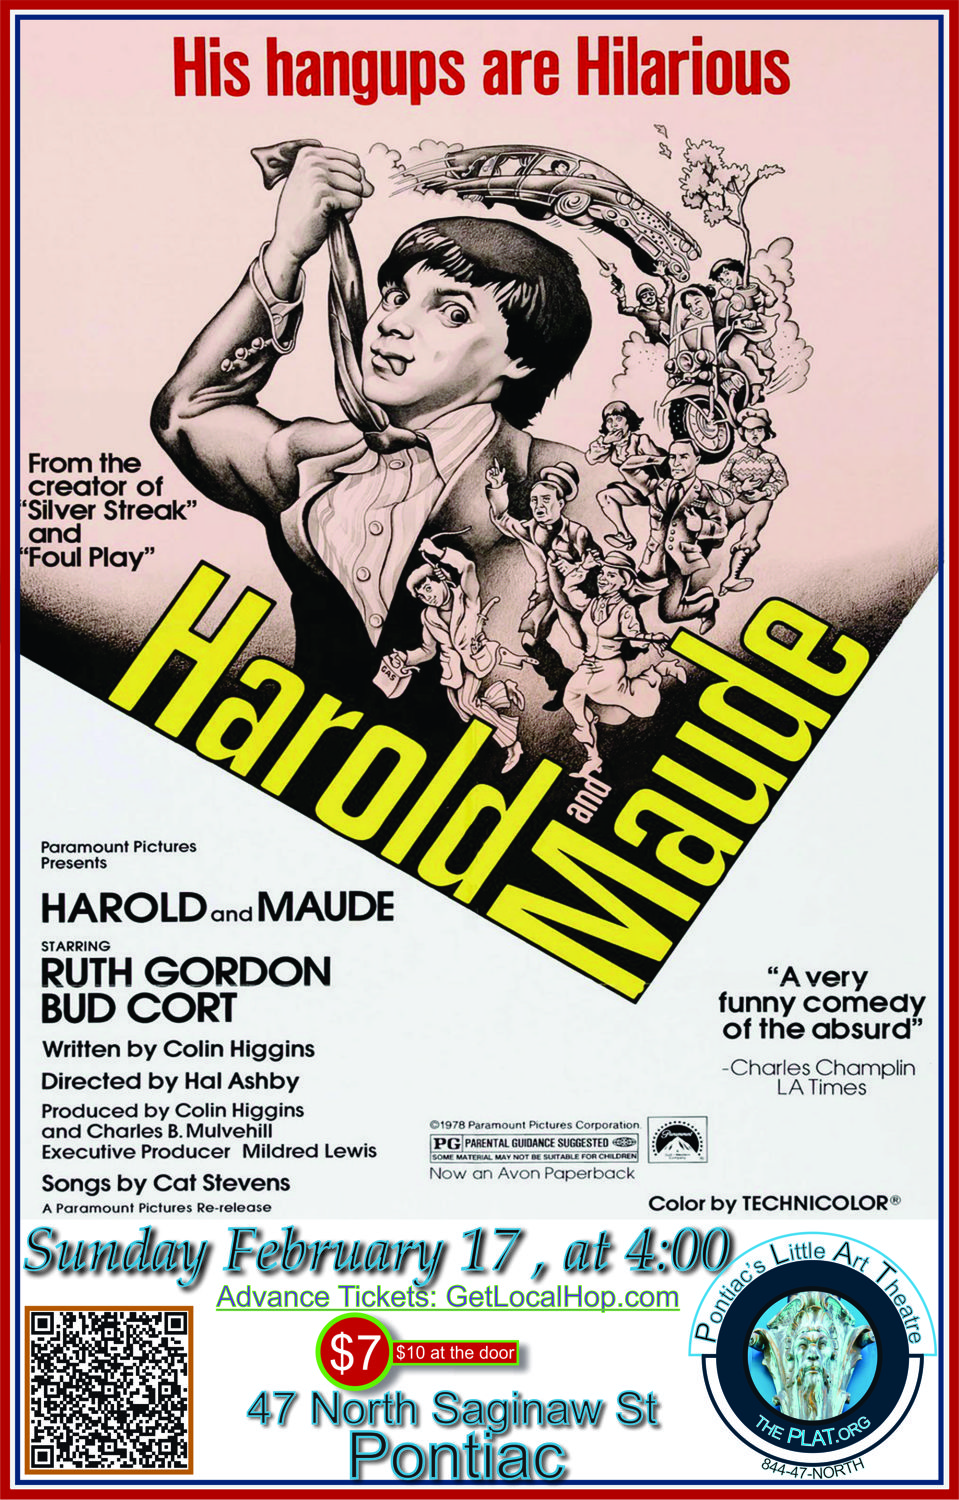 Harold and Maude in HD